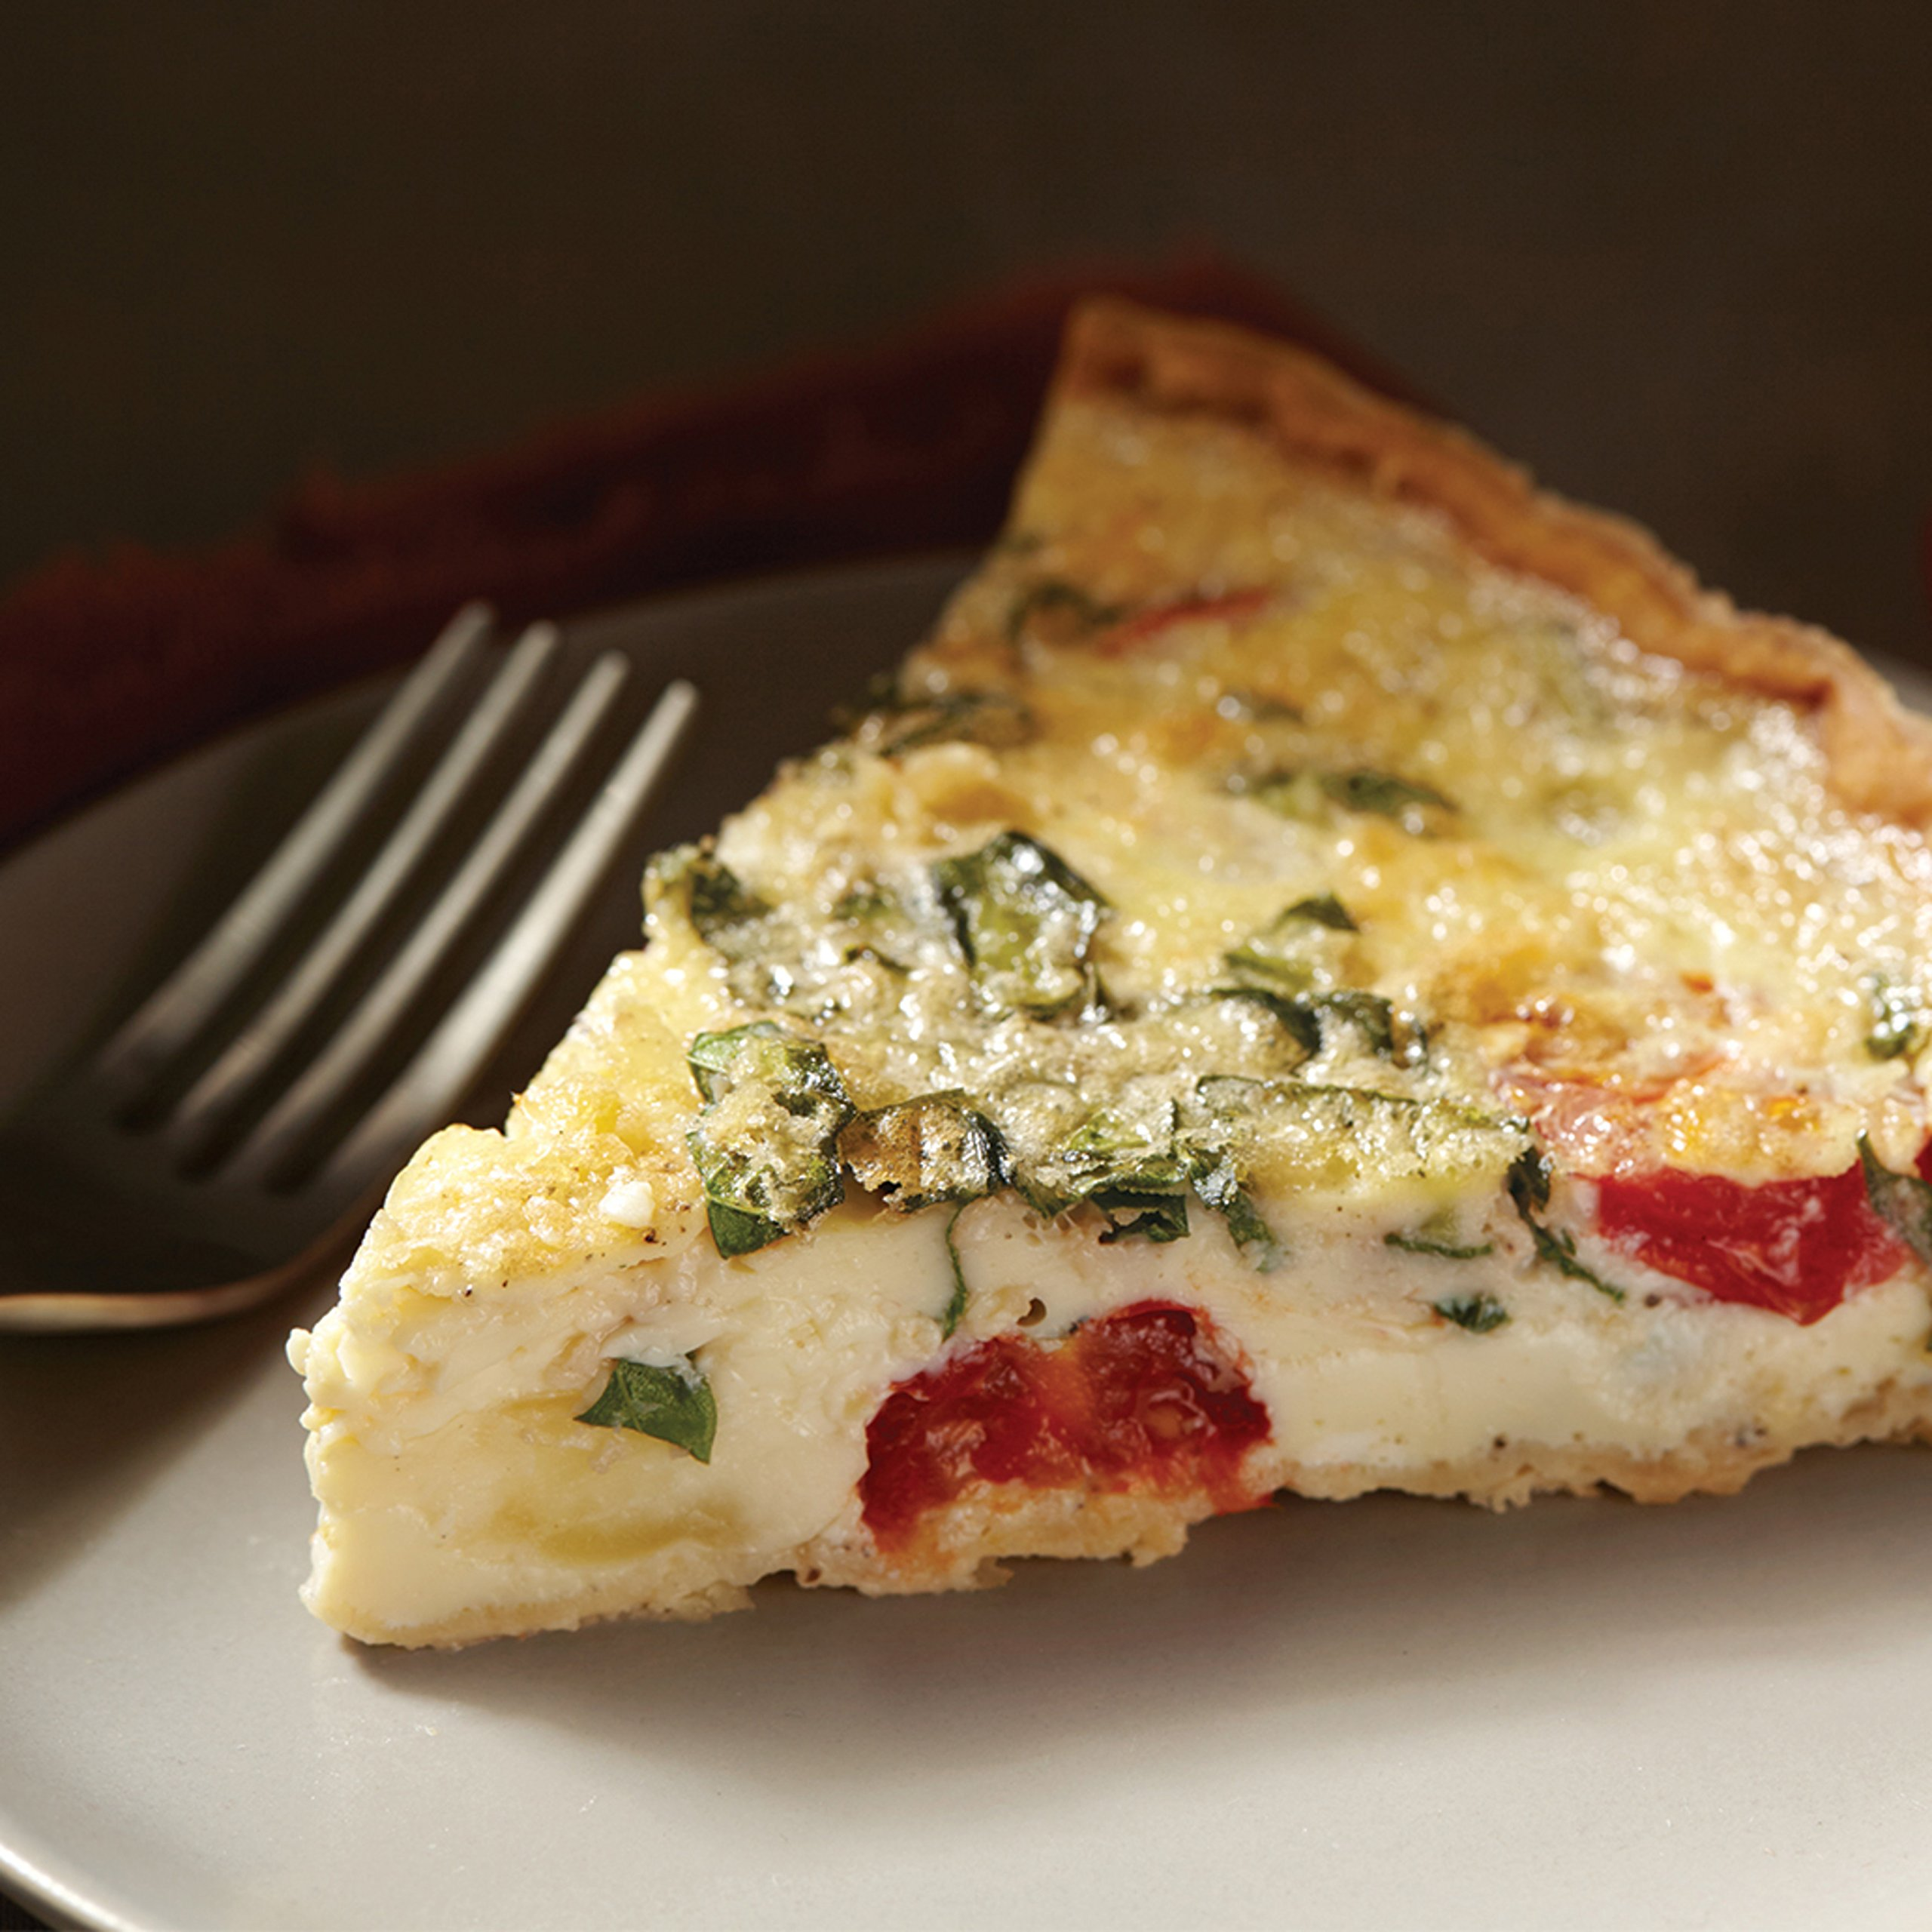 Wilton Excelle Elite Non-Stick Tart Pan and Quiche Pan with Removable Bottom, 11-Inch by Wilton (Image #6)